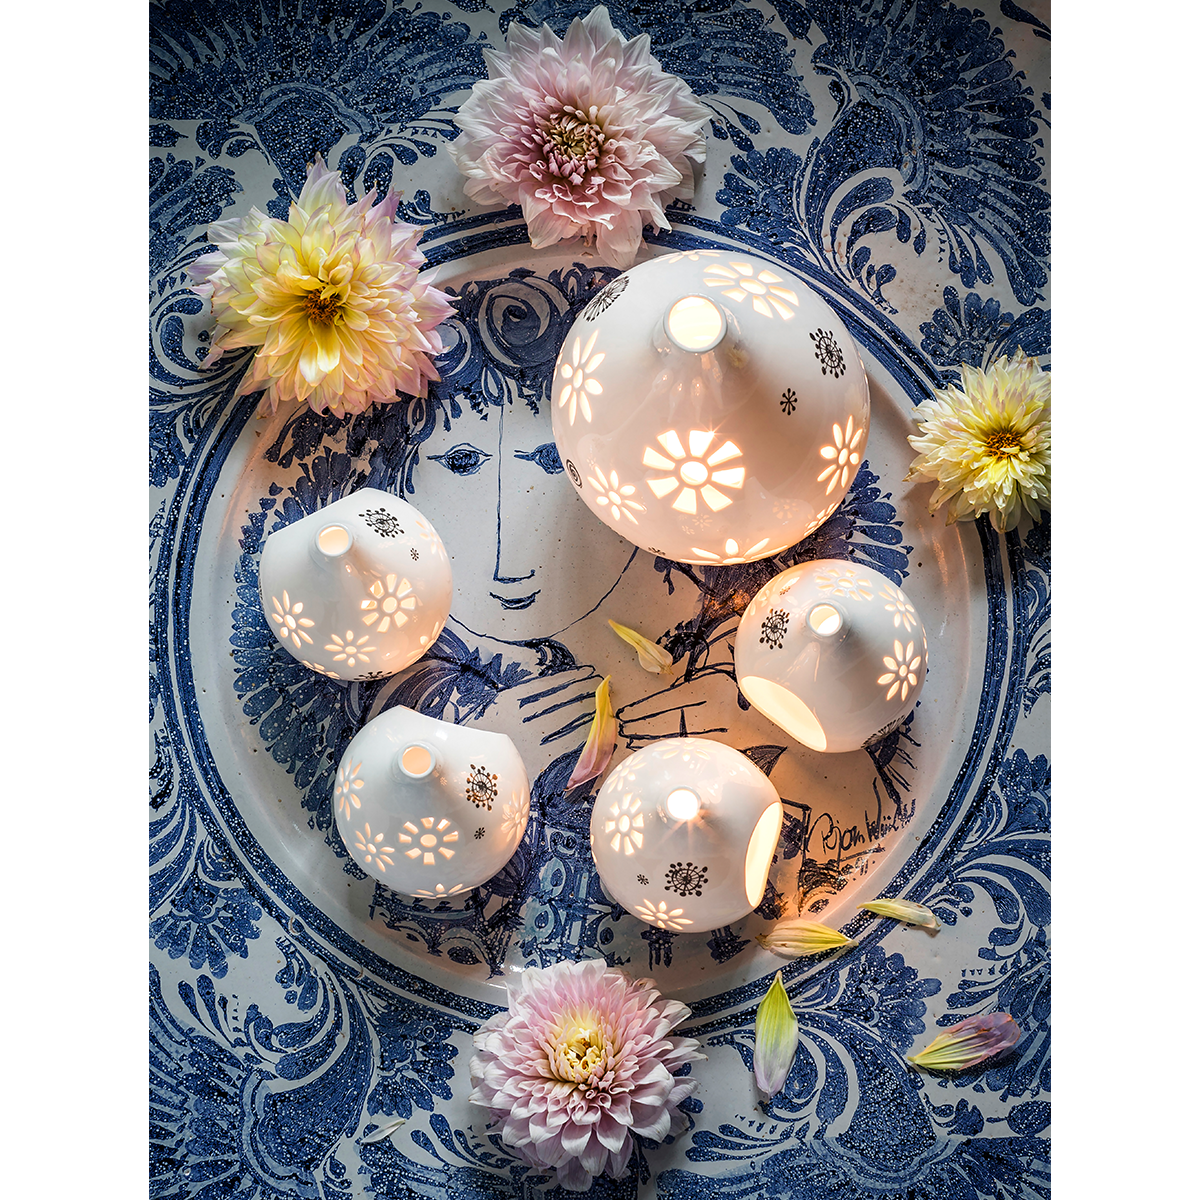 bw-tealight-holder-white-h-13-cm-flowerhead-1500x1500-4 5